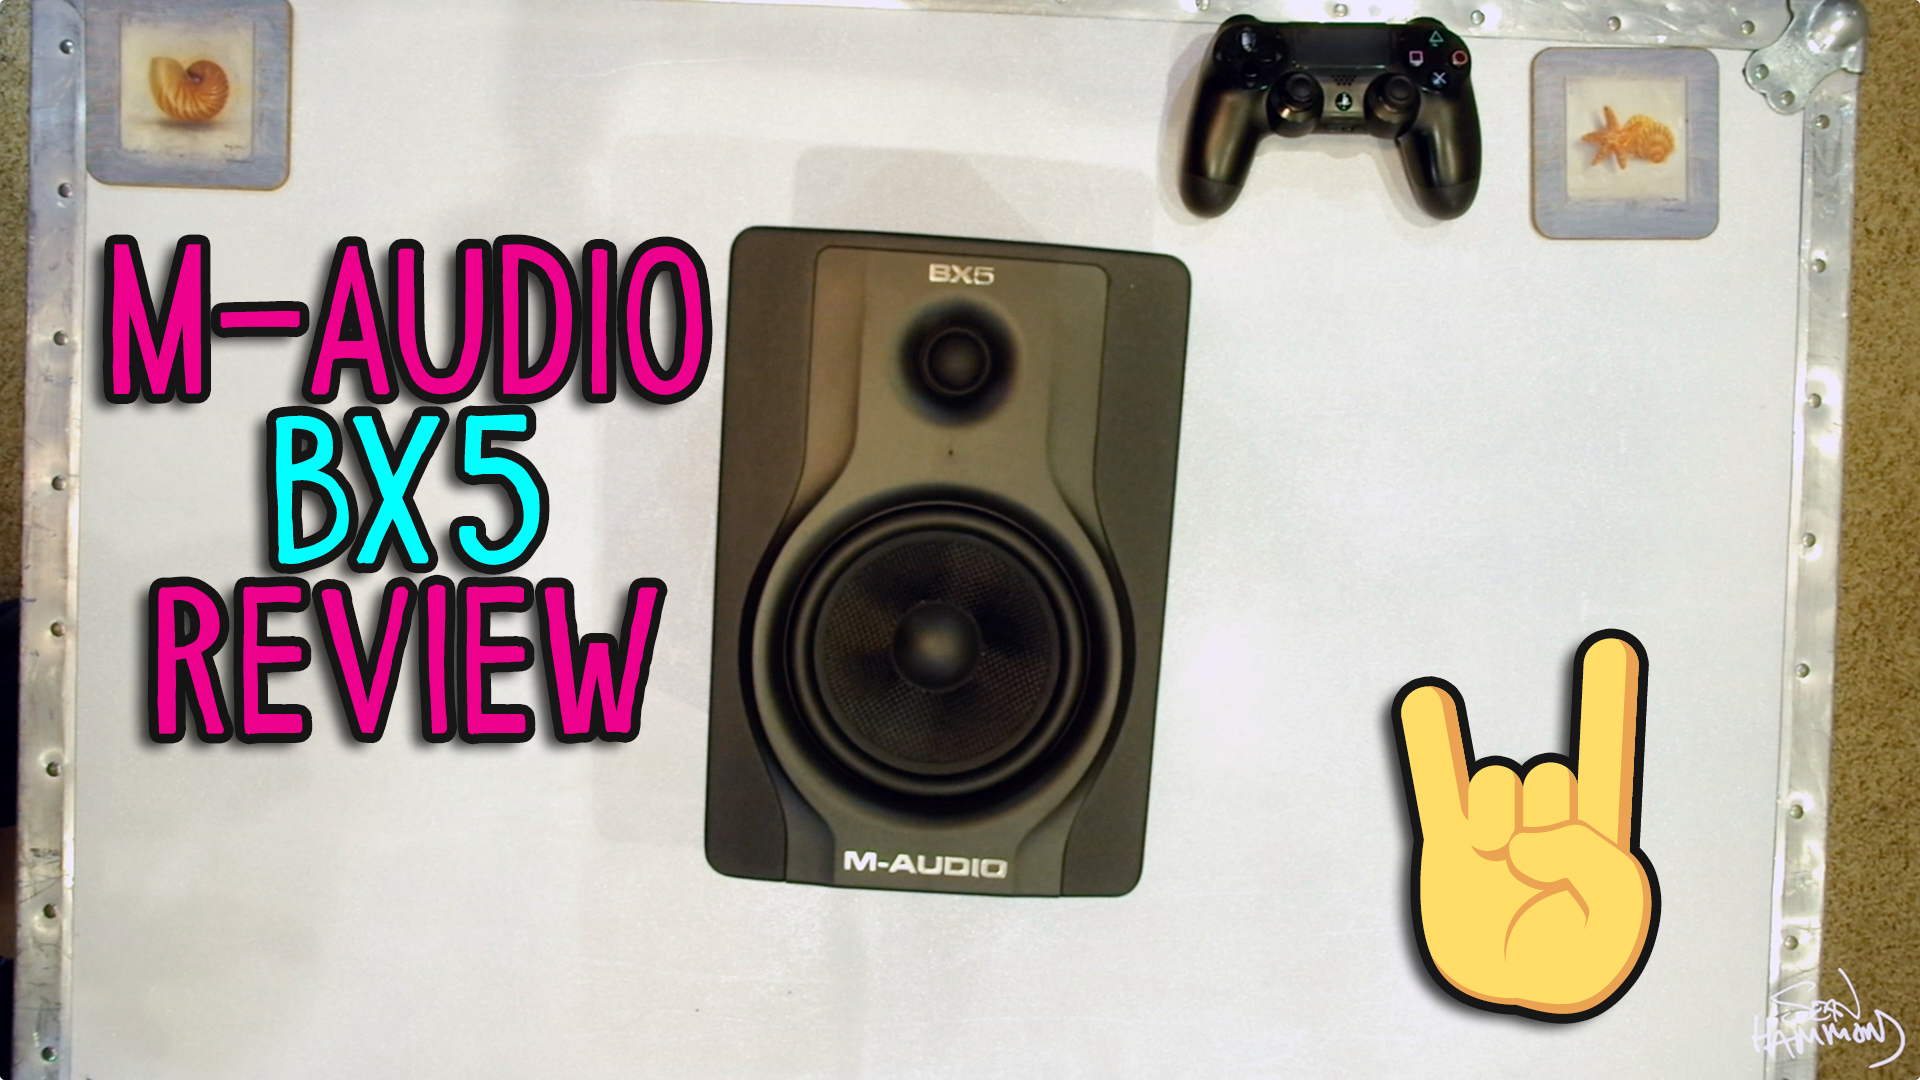 M-Audio BX5 Review